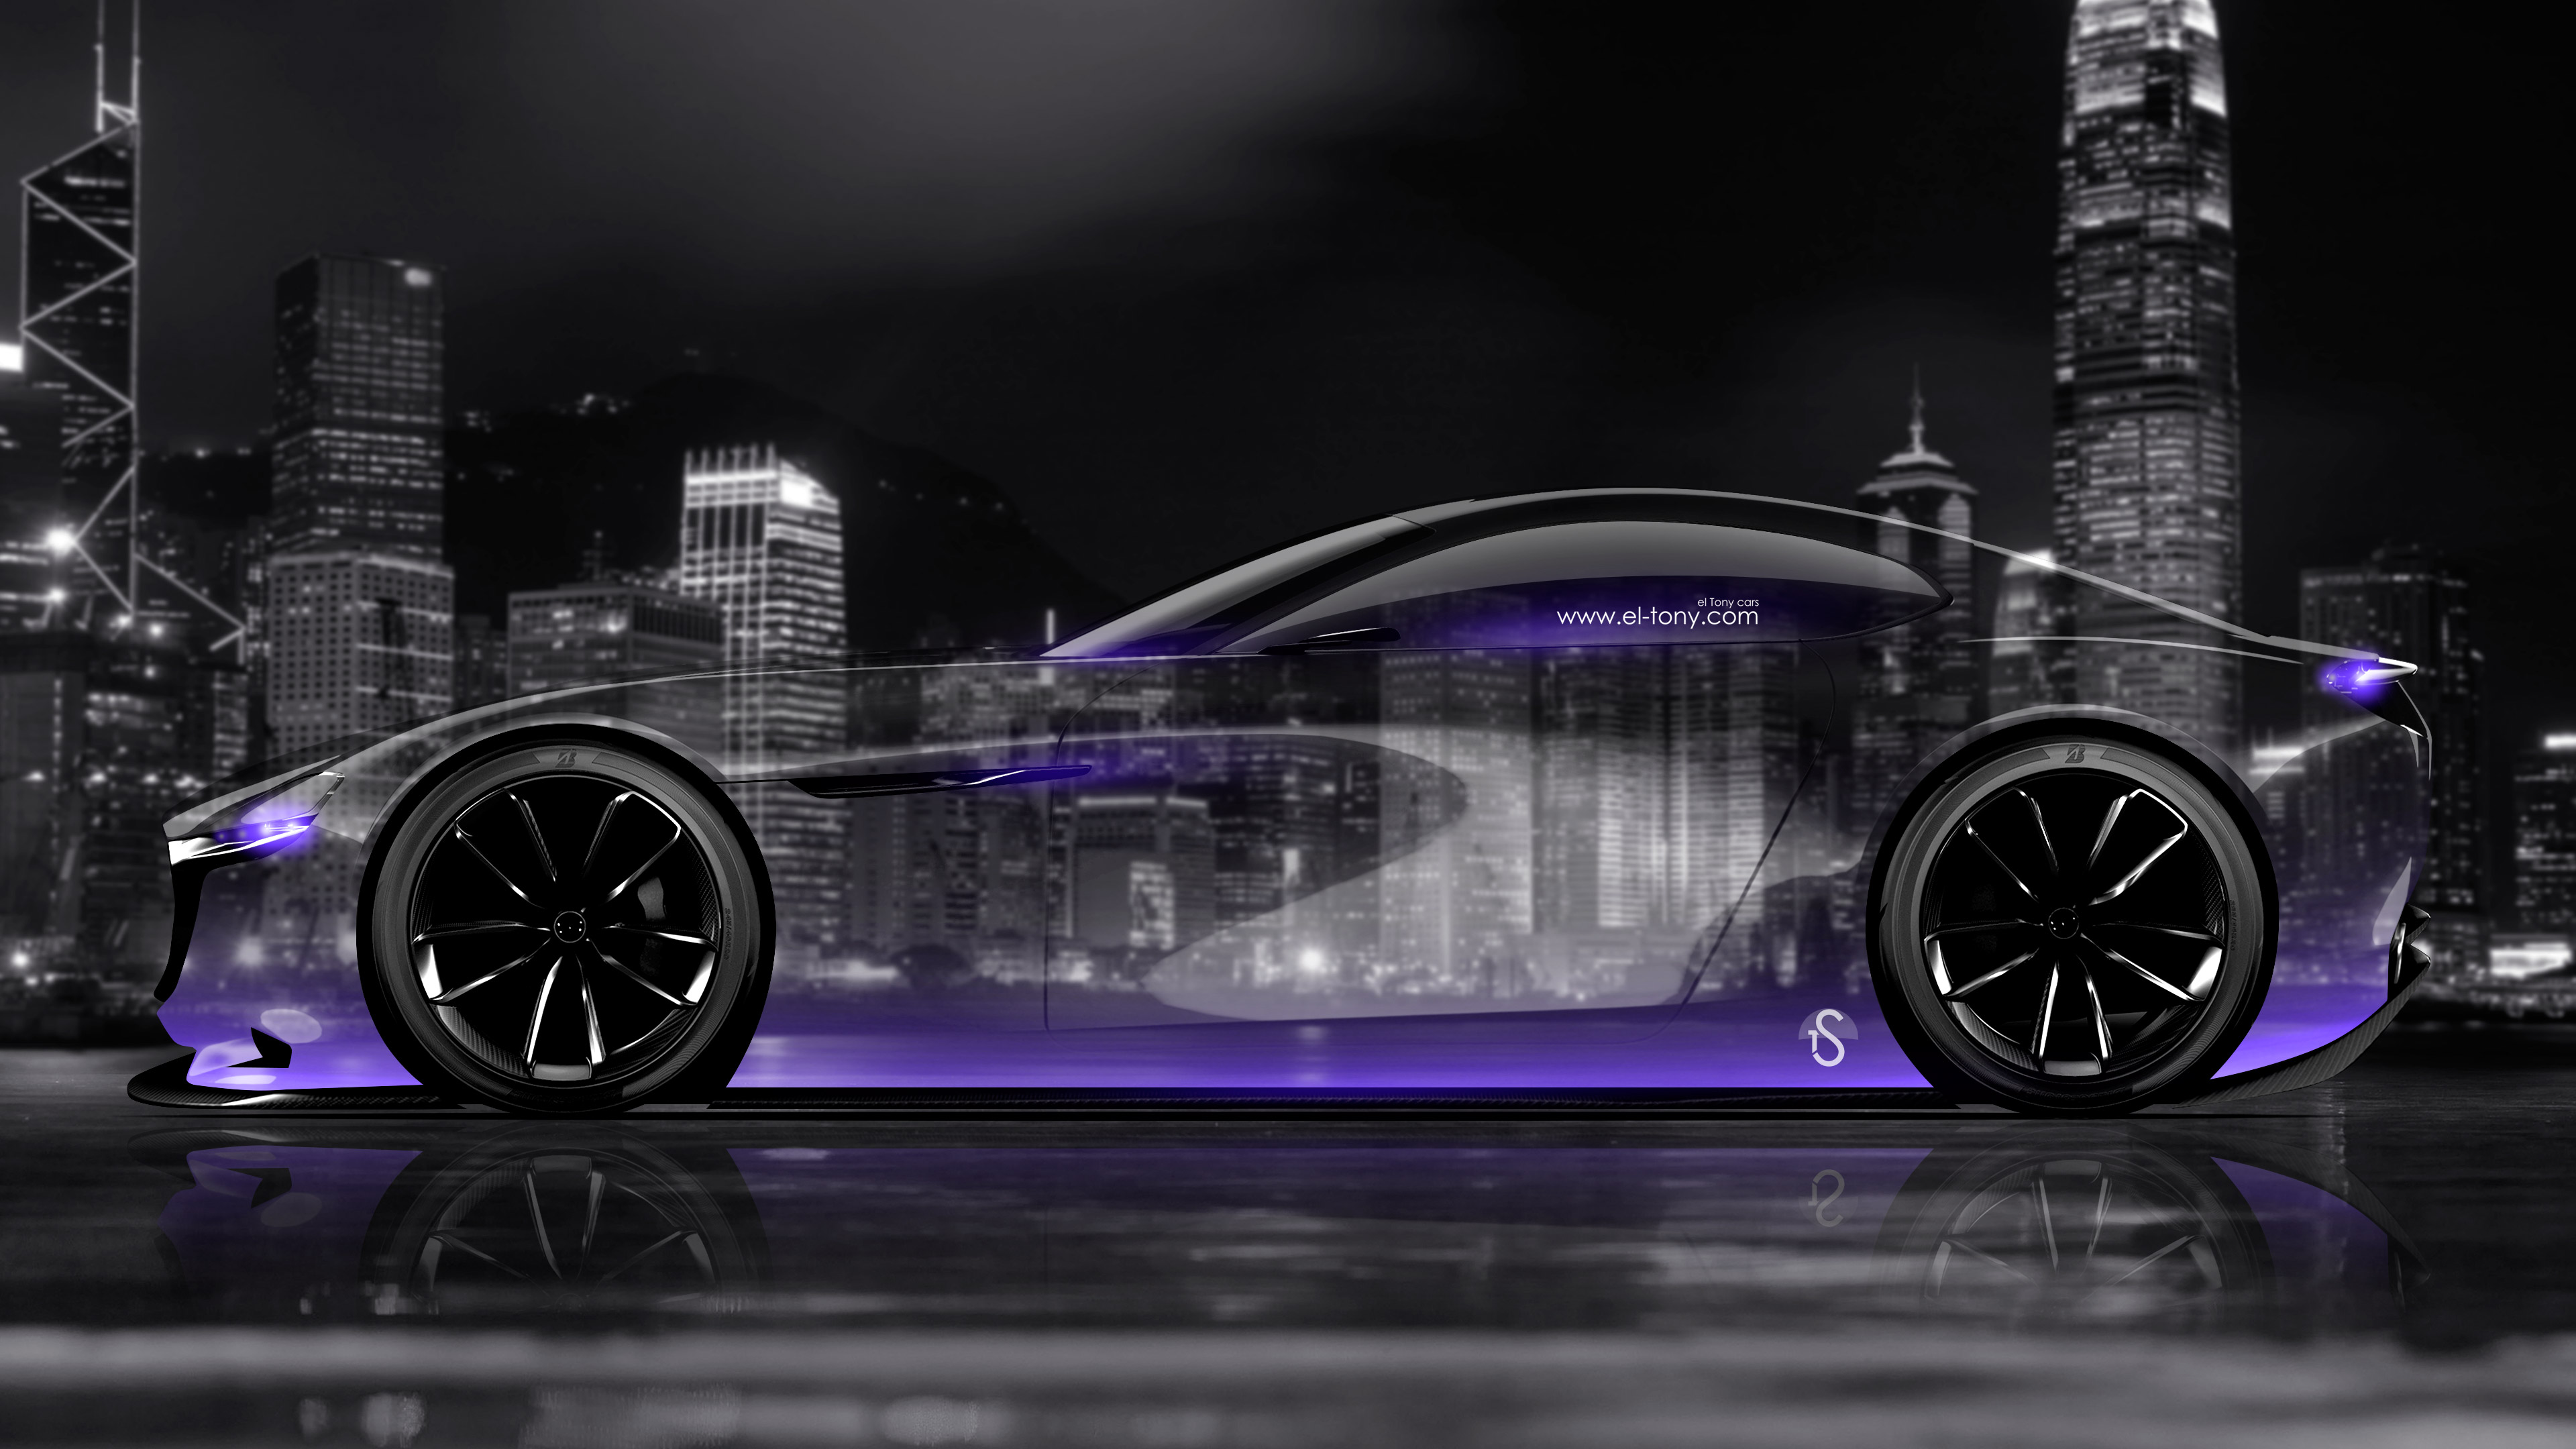 http://www.el-tony.com/wp-content/uploads/2015/11/Mazda-RX-Vision-Concept-Side-Crystal-City-Night-Car-2015-Fantasy-Violet-Neon-4K-Wallpapers-design-by-Tony-Kokhan-www.el-tony.com-image.jpg